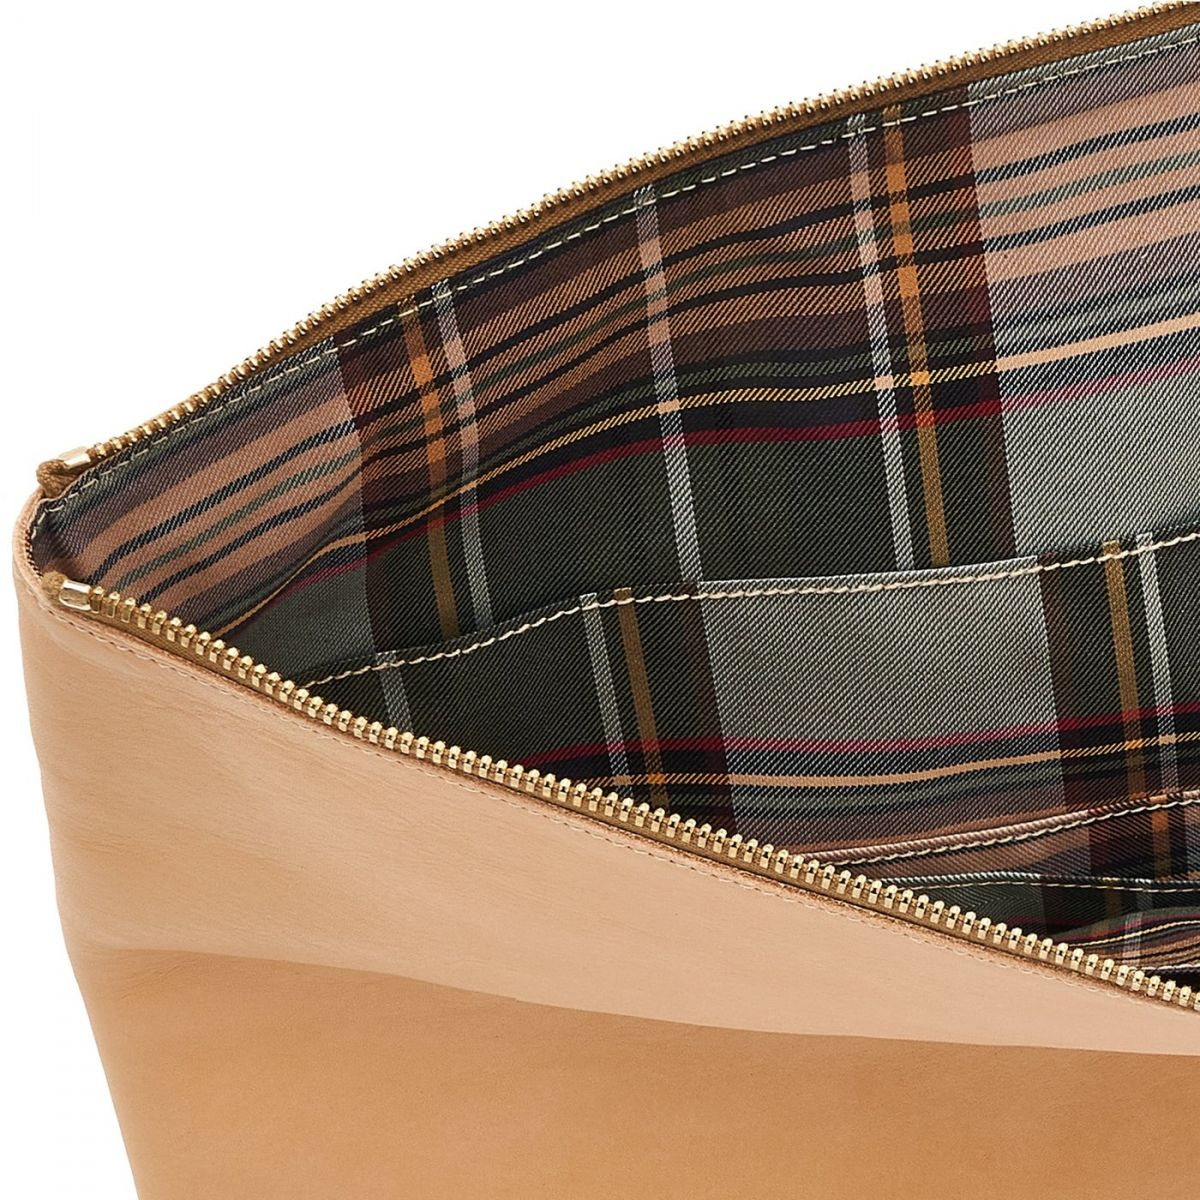 Portfolio in Cowhide Double Leather OSL002 color Natural | Details